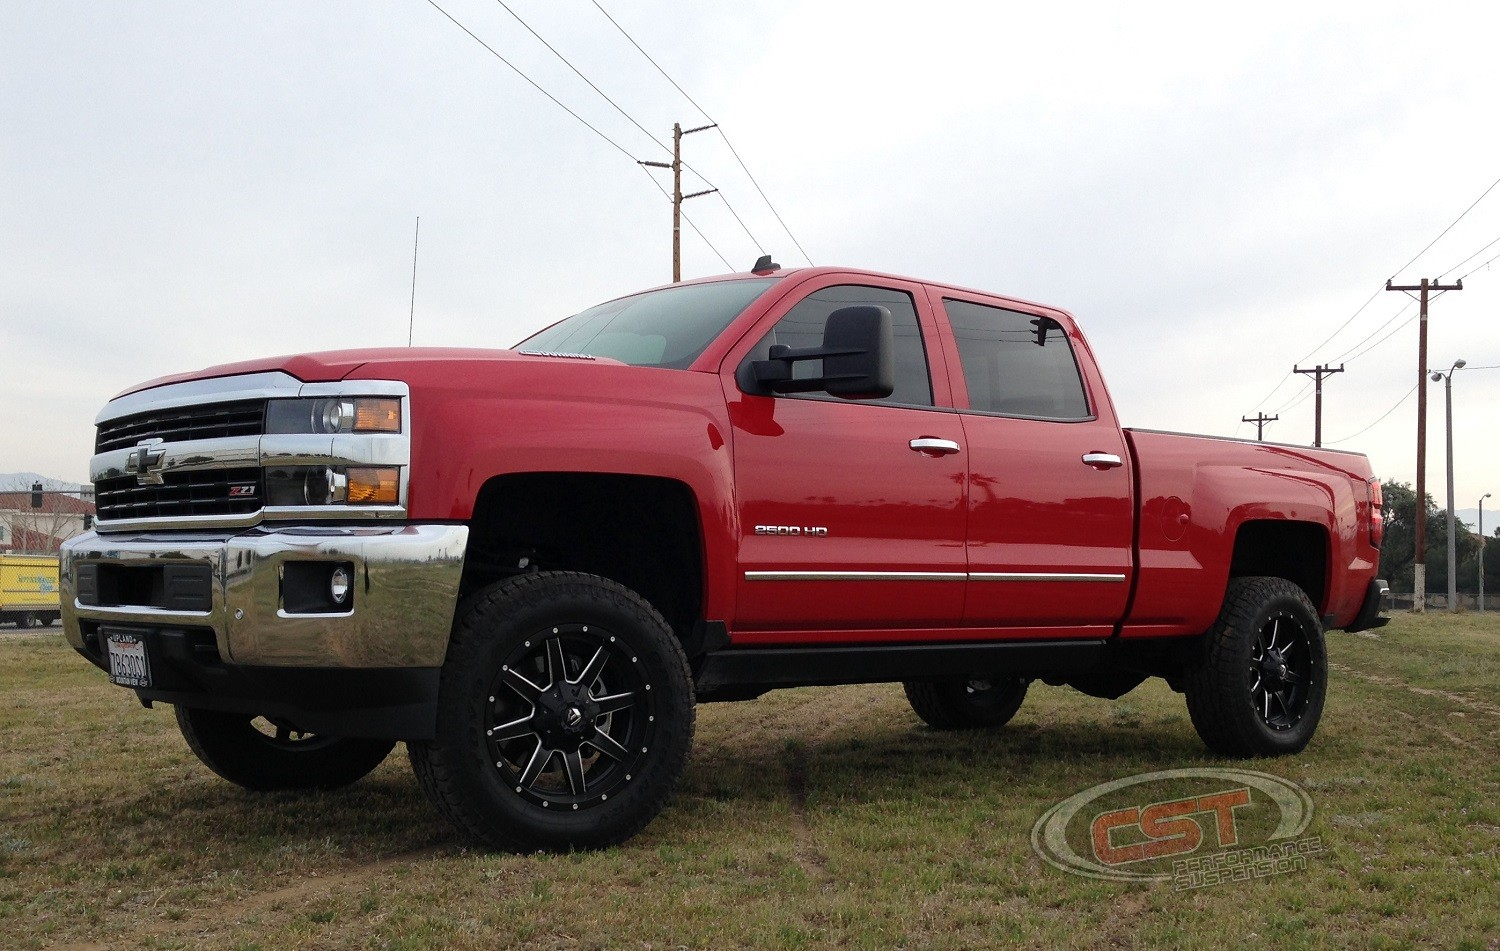 Csk G18 3 11 19 Chevy Gmc Hd 2500 3500 2wd 4wd S T L High Clearance 4 6 Stage 3 Suspension System California Supertrucks Inc